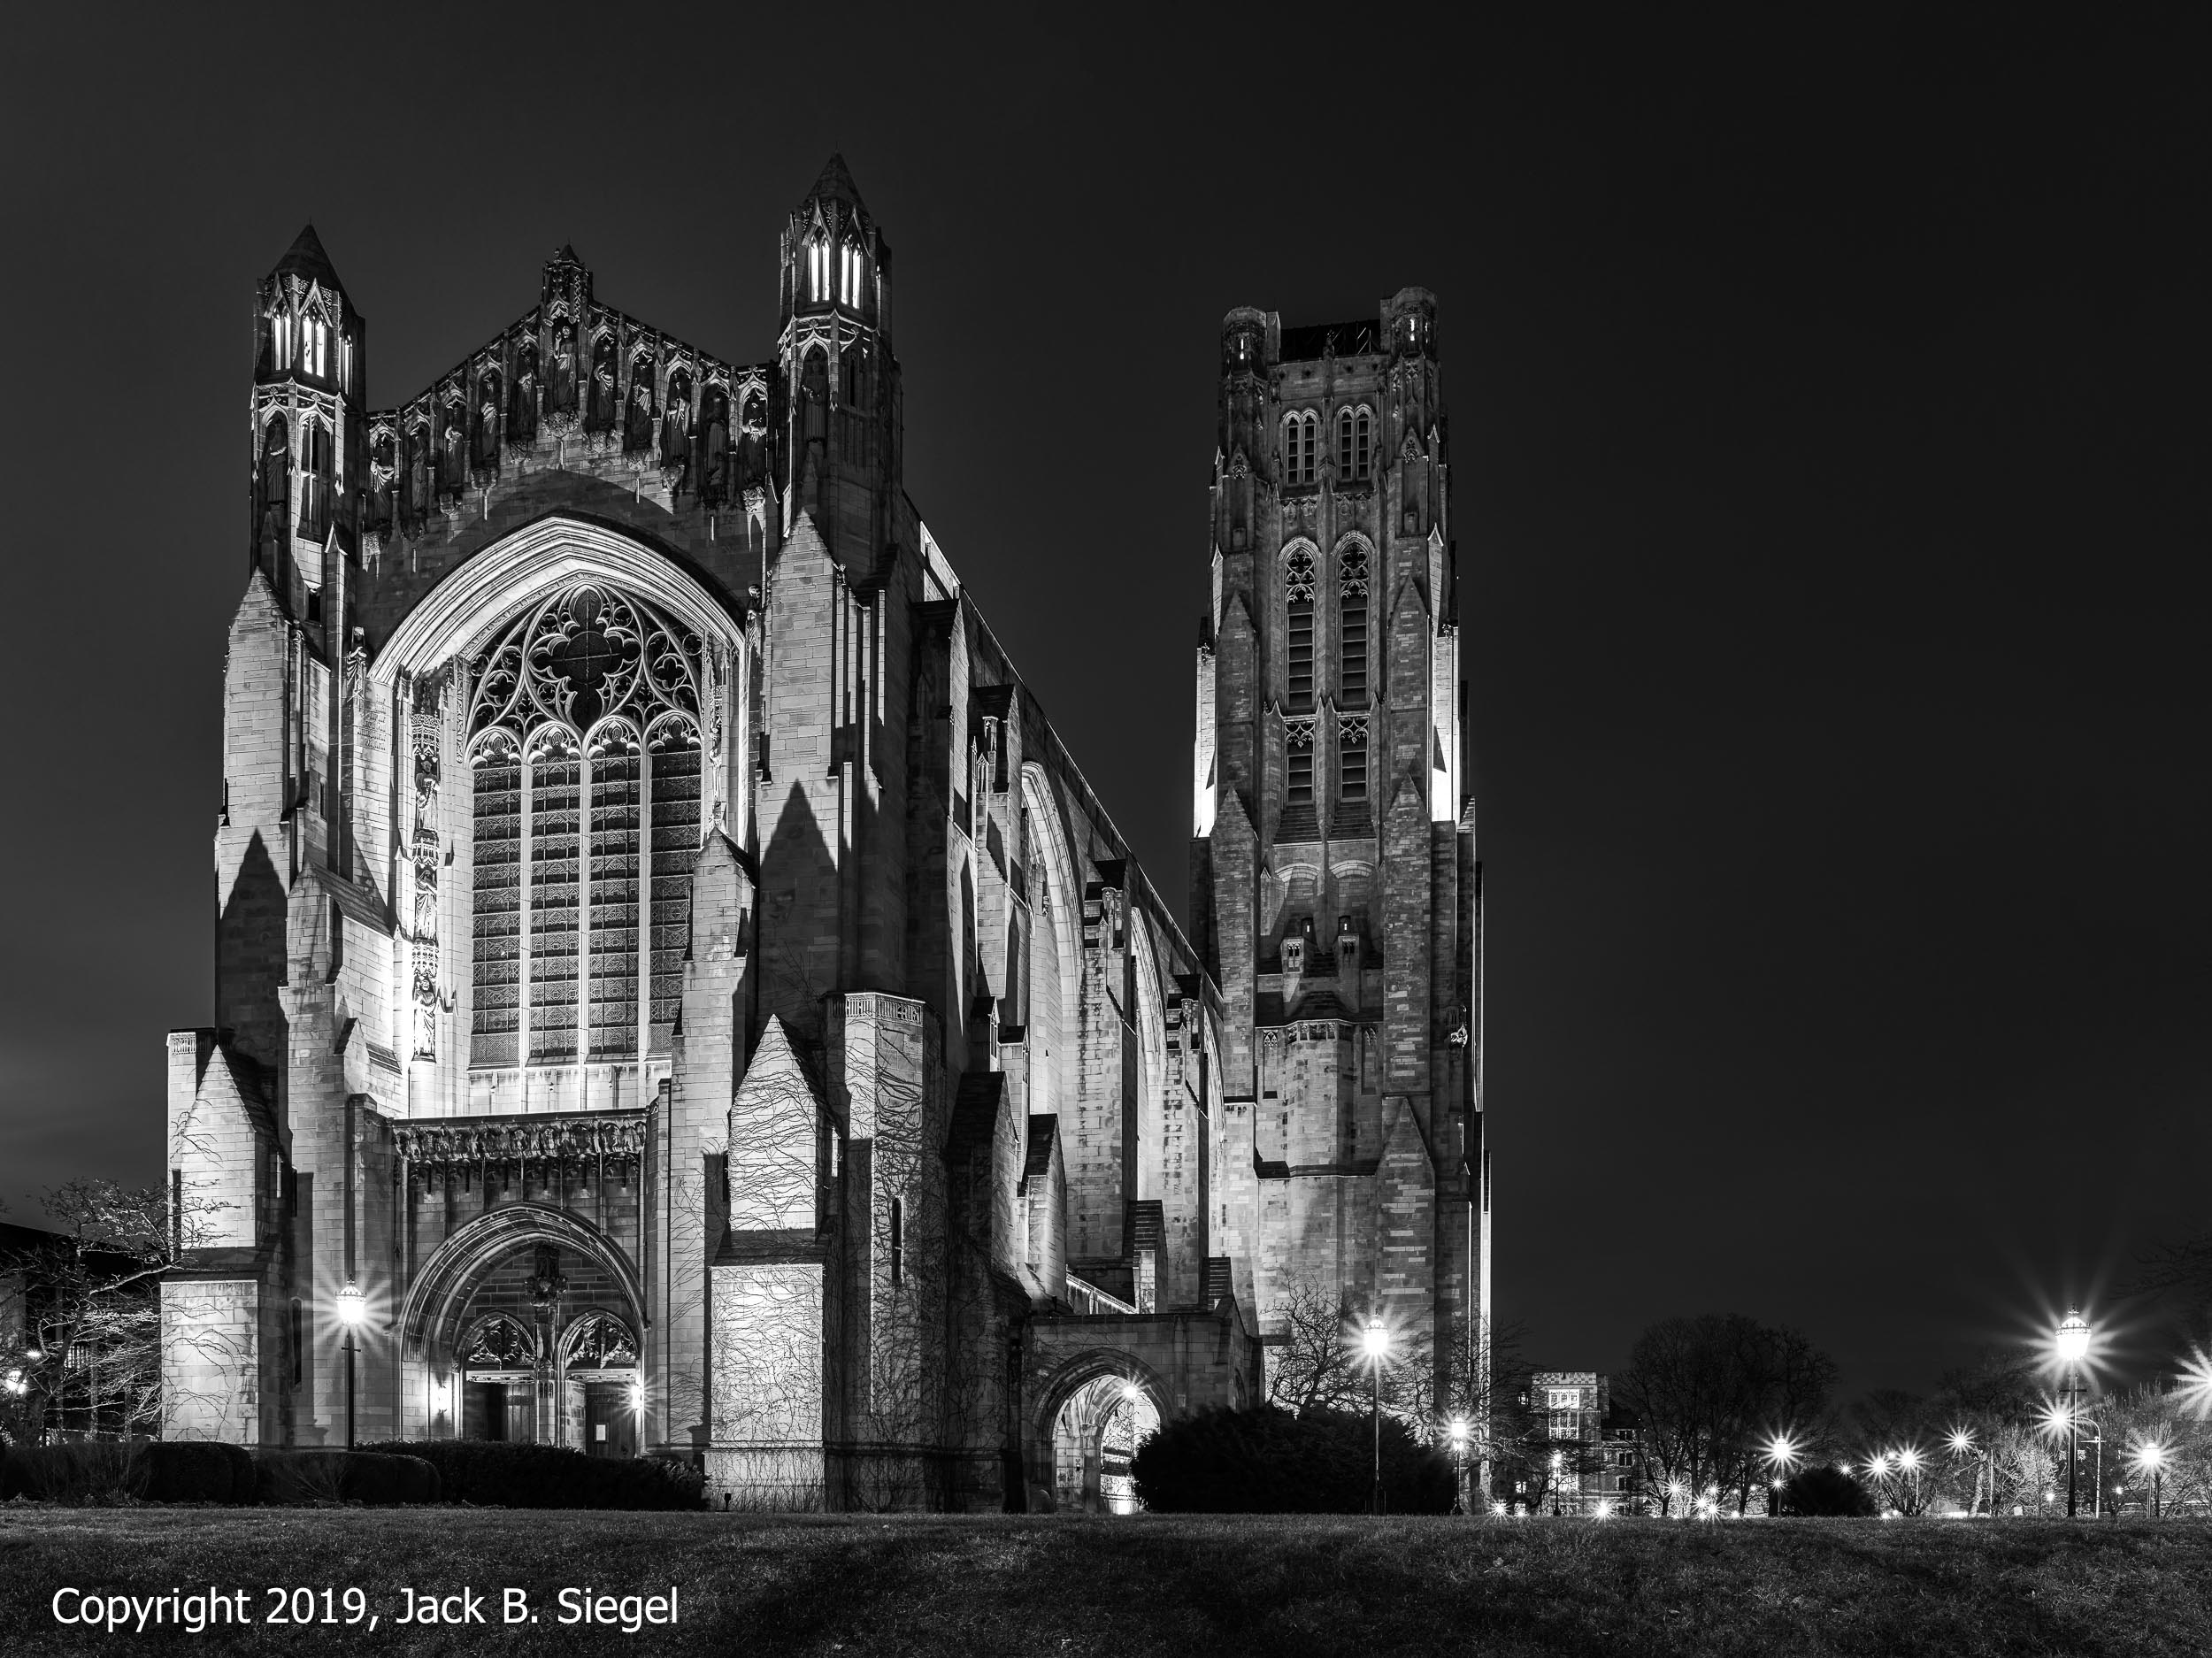 Rockefeller Chapel on the University of Chicago Campus